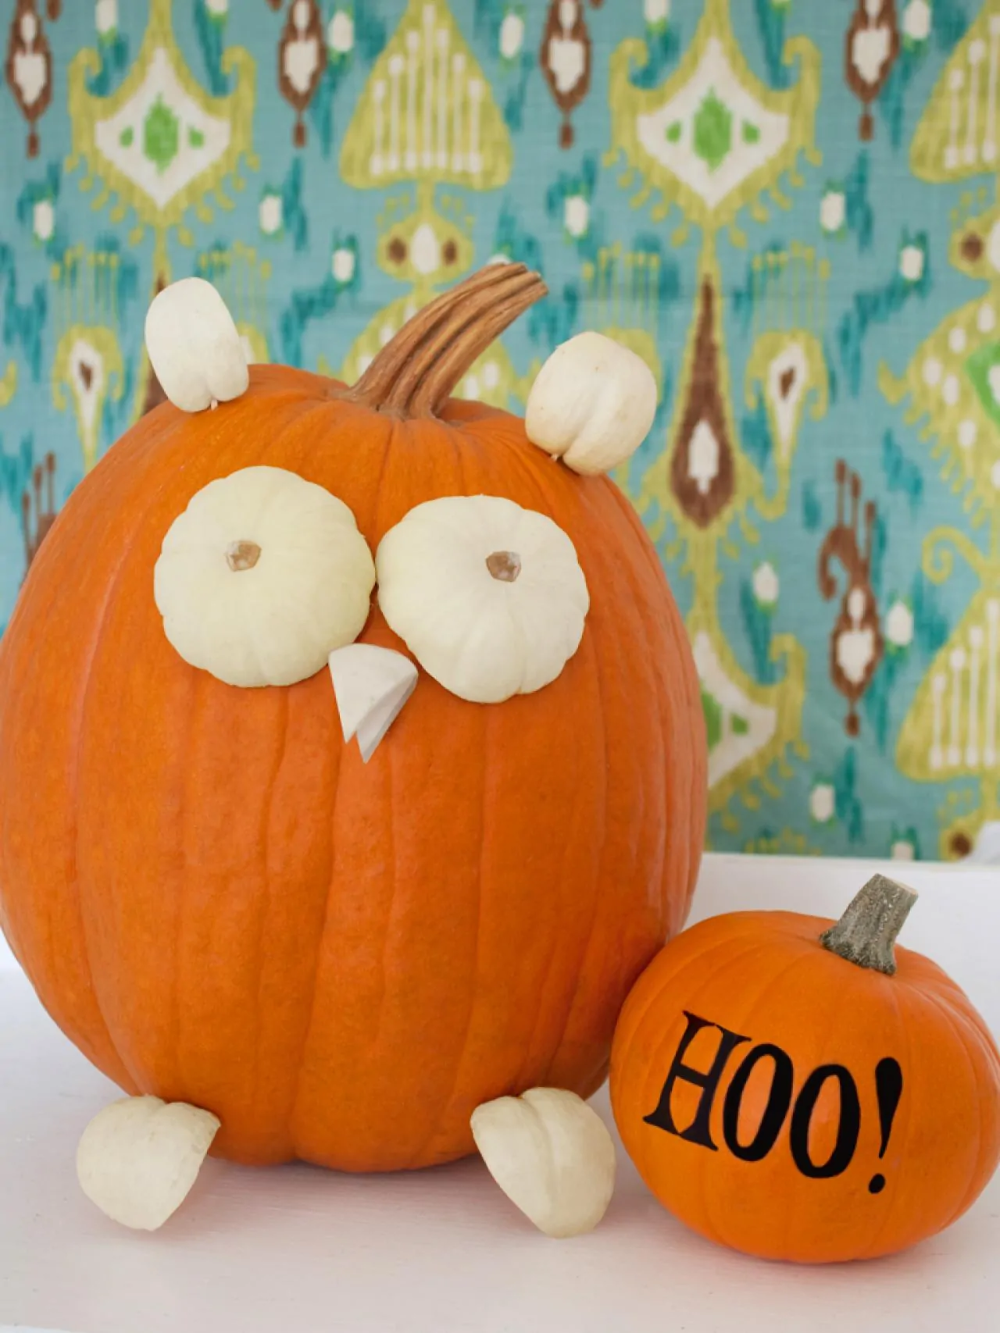 15 Cute Fall Pumpkin Crafts #sculpturesdecitrouille